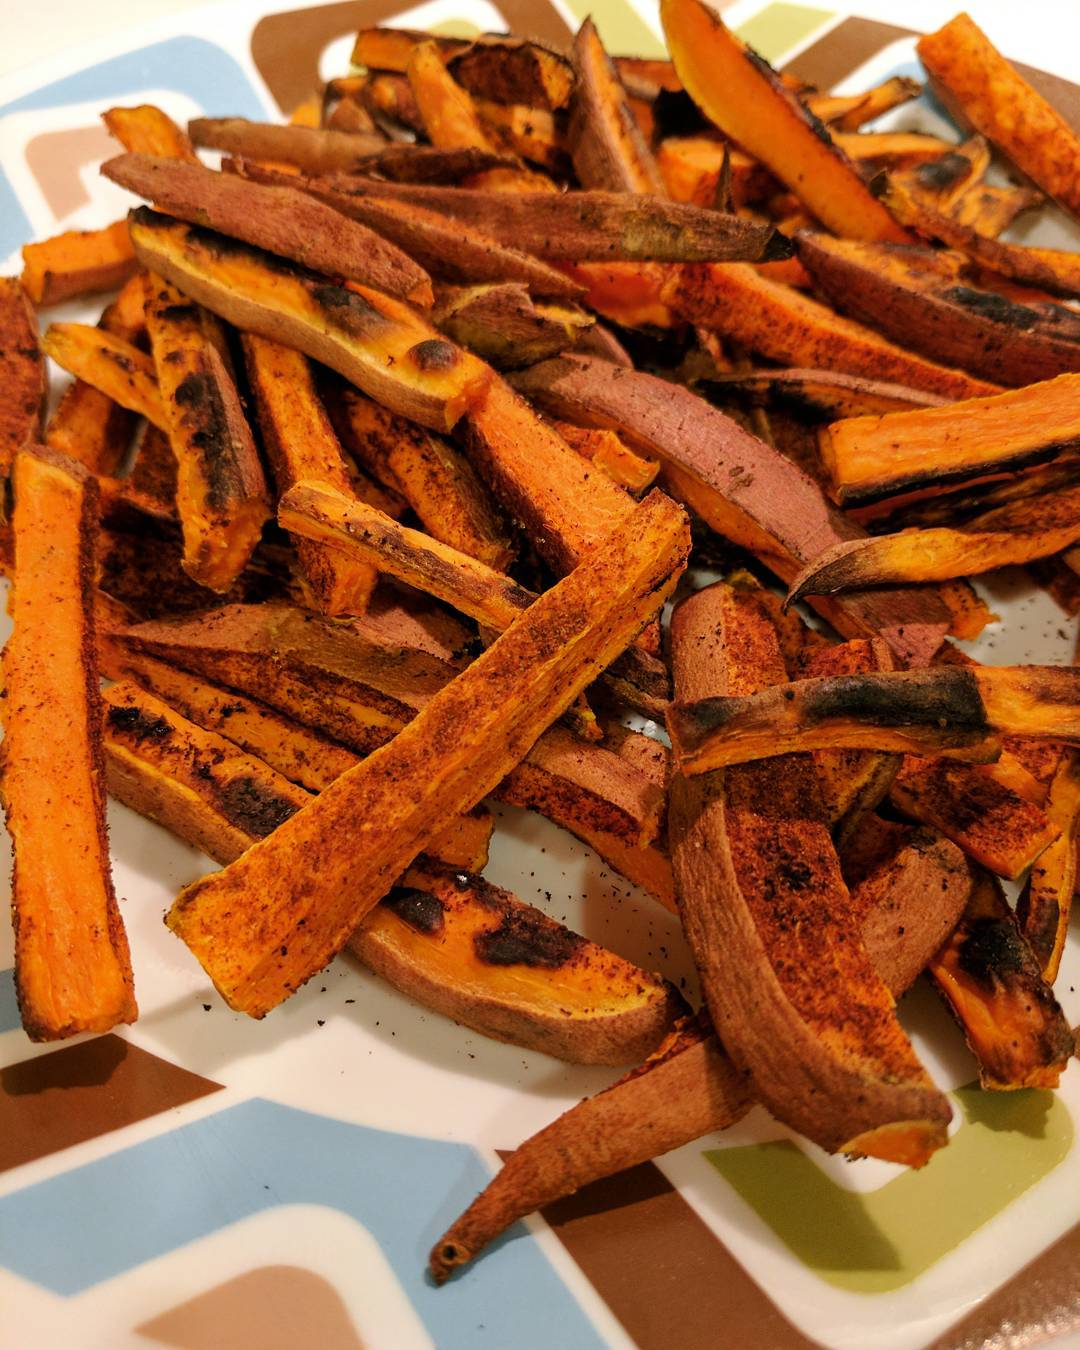 baked spicy cinnamon sweet potato fries by @bestlaidpans